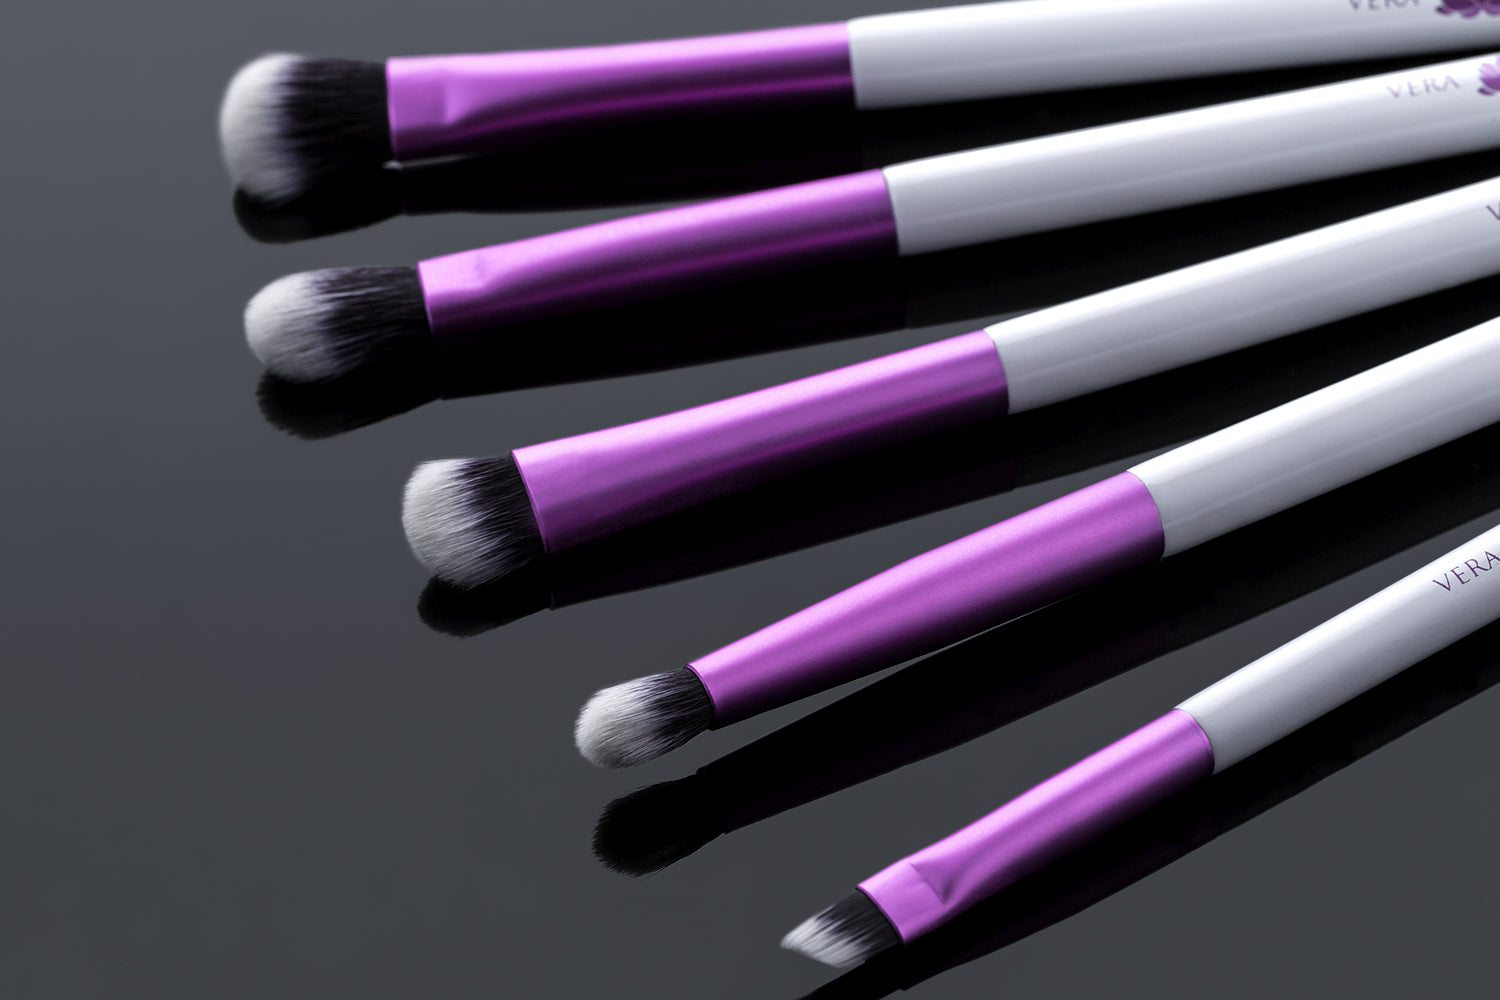 Development Brushes and Accessories